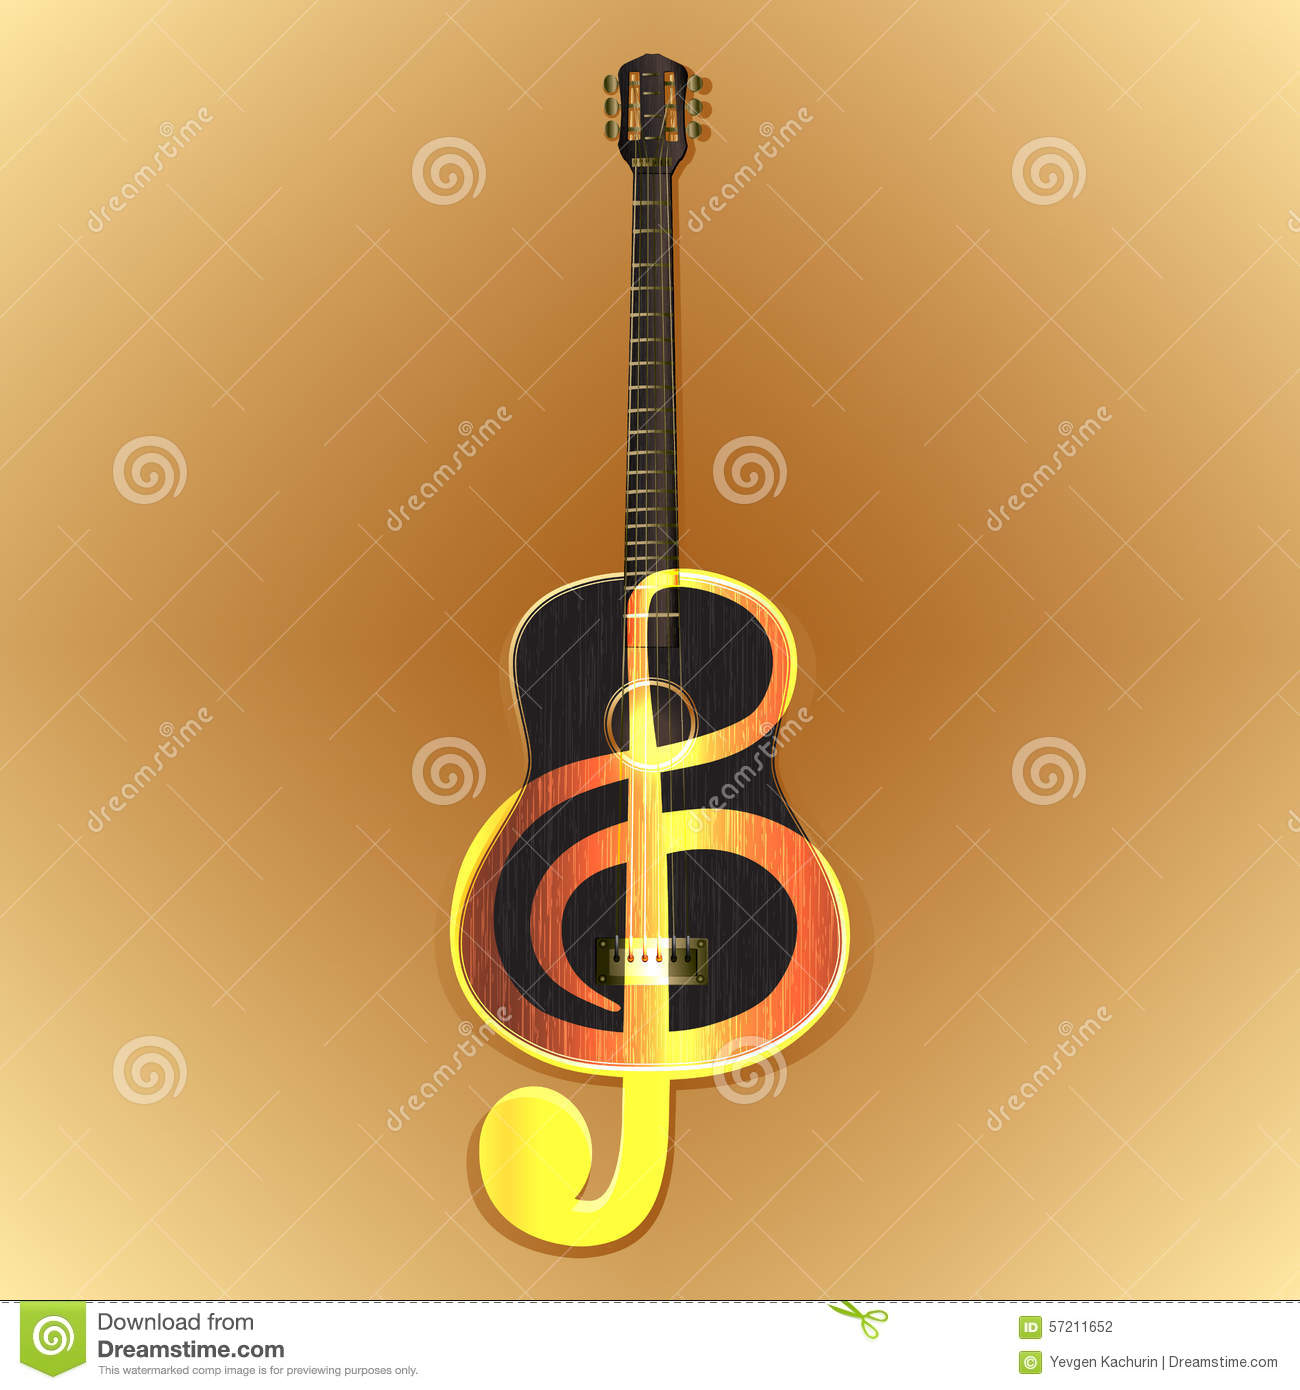 Acoustic Guitar With A Treble Clef Stock Vector - Image: 57211652